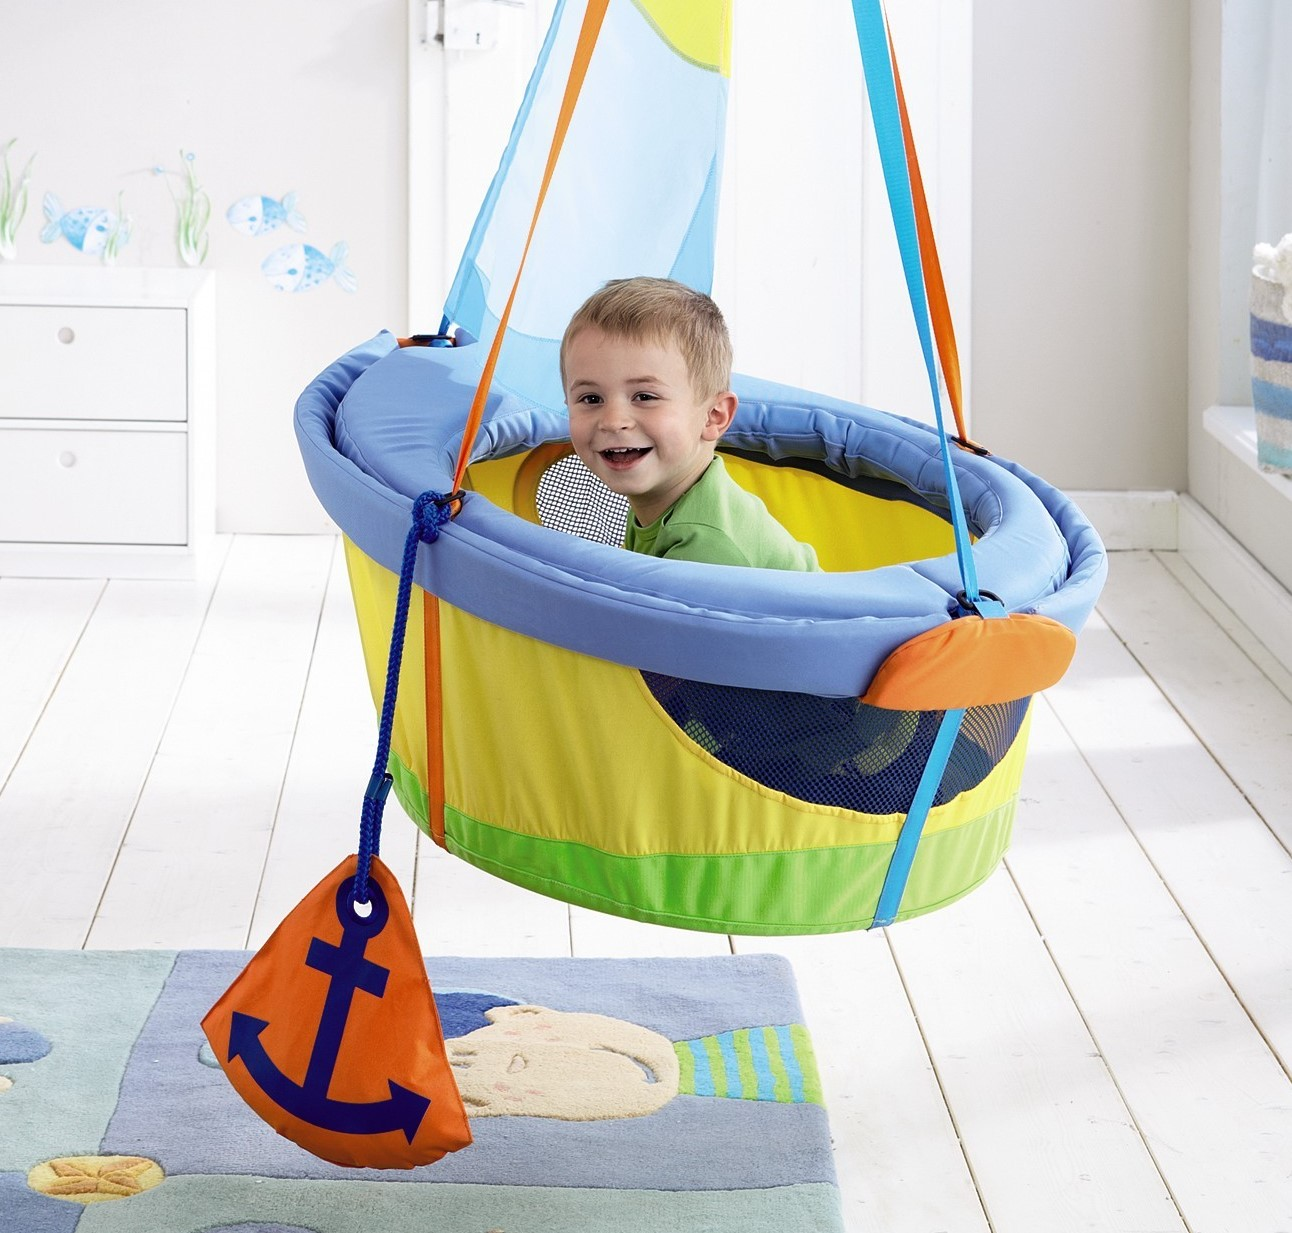 sc 1 st  InventorSpot & Let Your Toddleru0027s Imagination Set Sail With HABAu0027s Swing Ship Ahoy